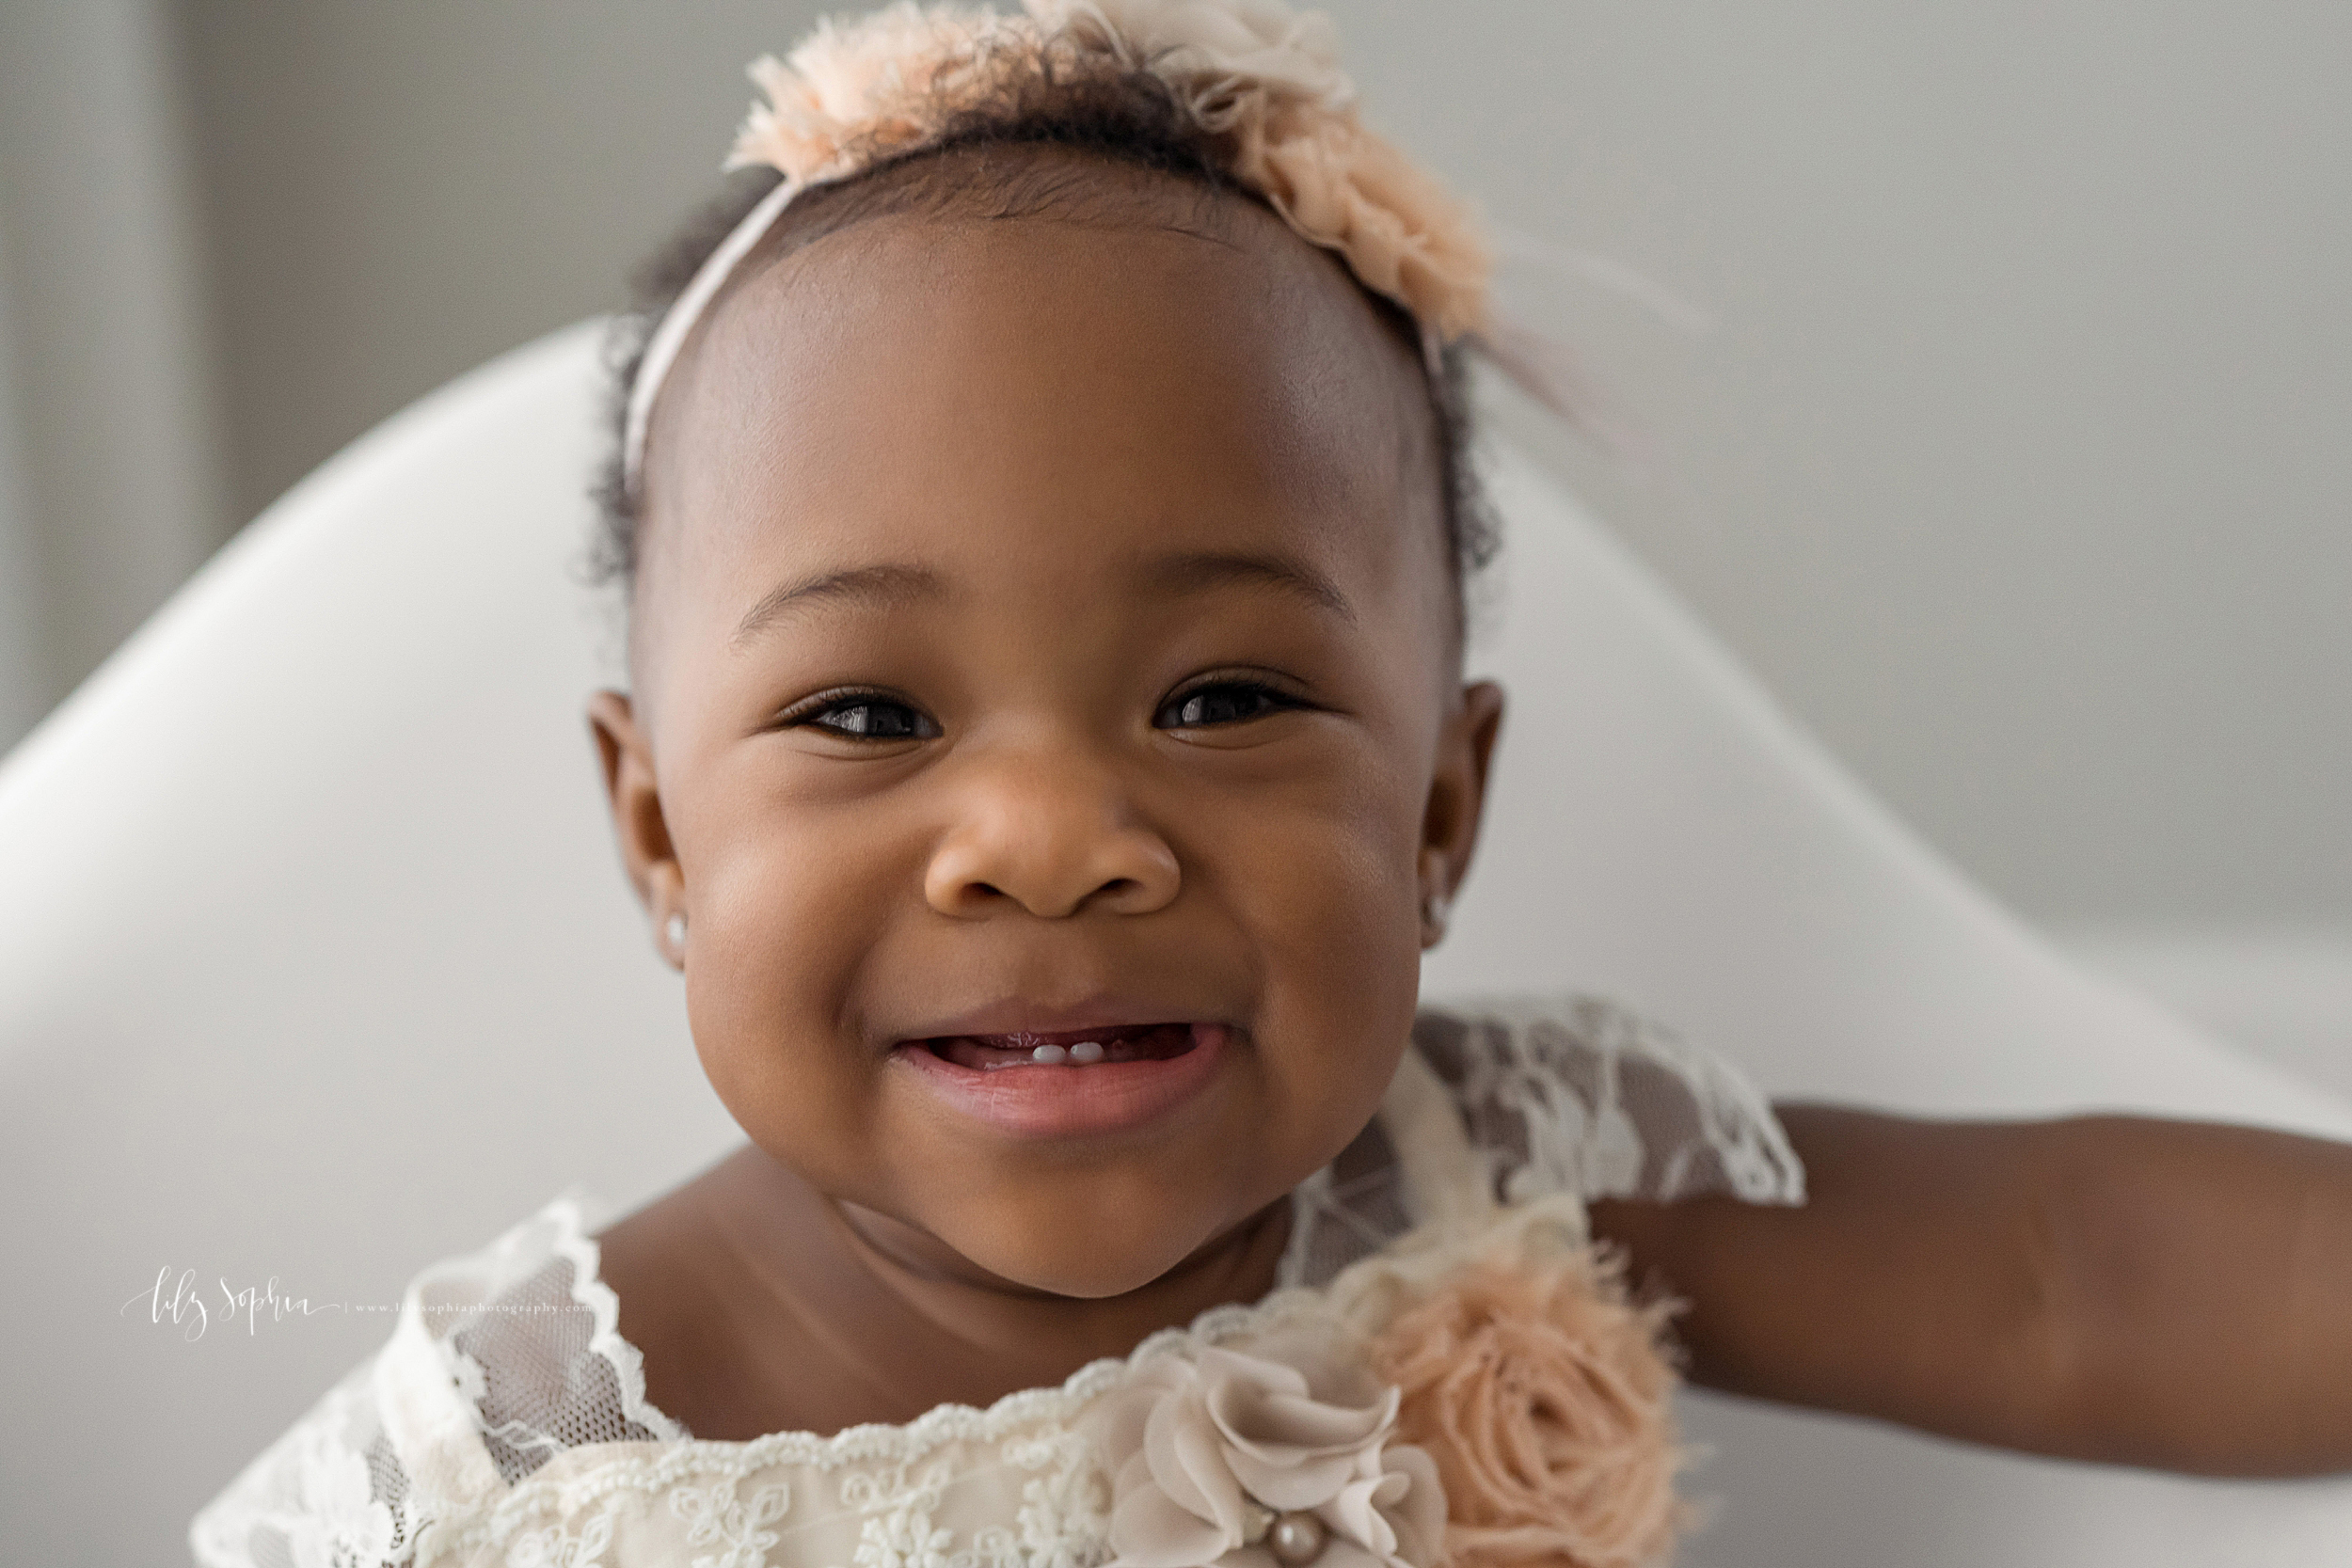 atlanta-decatur-candler-park-sandy-springs-buckhead-virginia-highlands-west-end-decatur-lily-sophia-photography-studio-one-year-old-baby-girl-first-birthday-cake-smash-toddler-big-brother-family-parents-session_1868.jpg